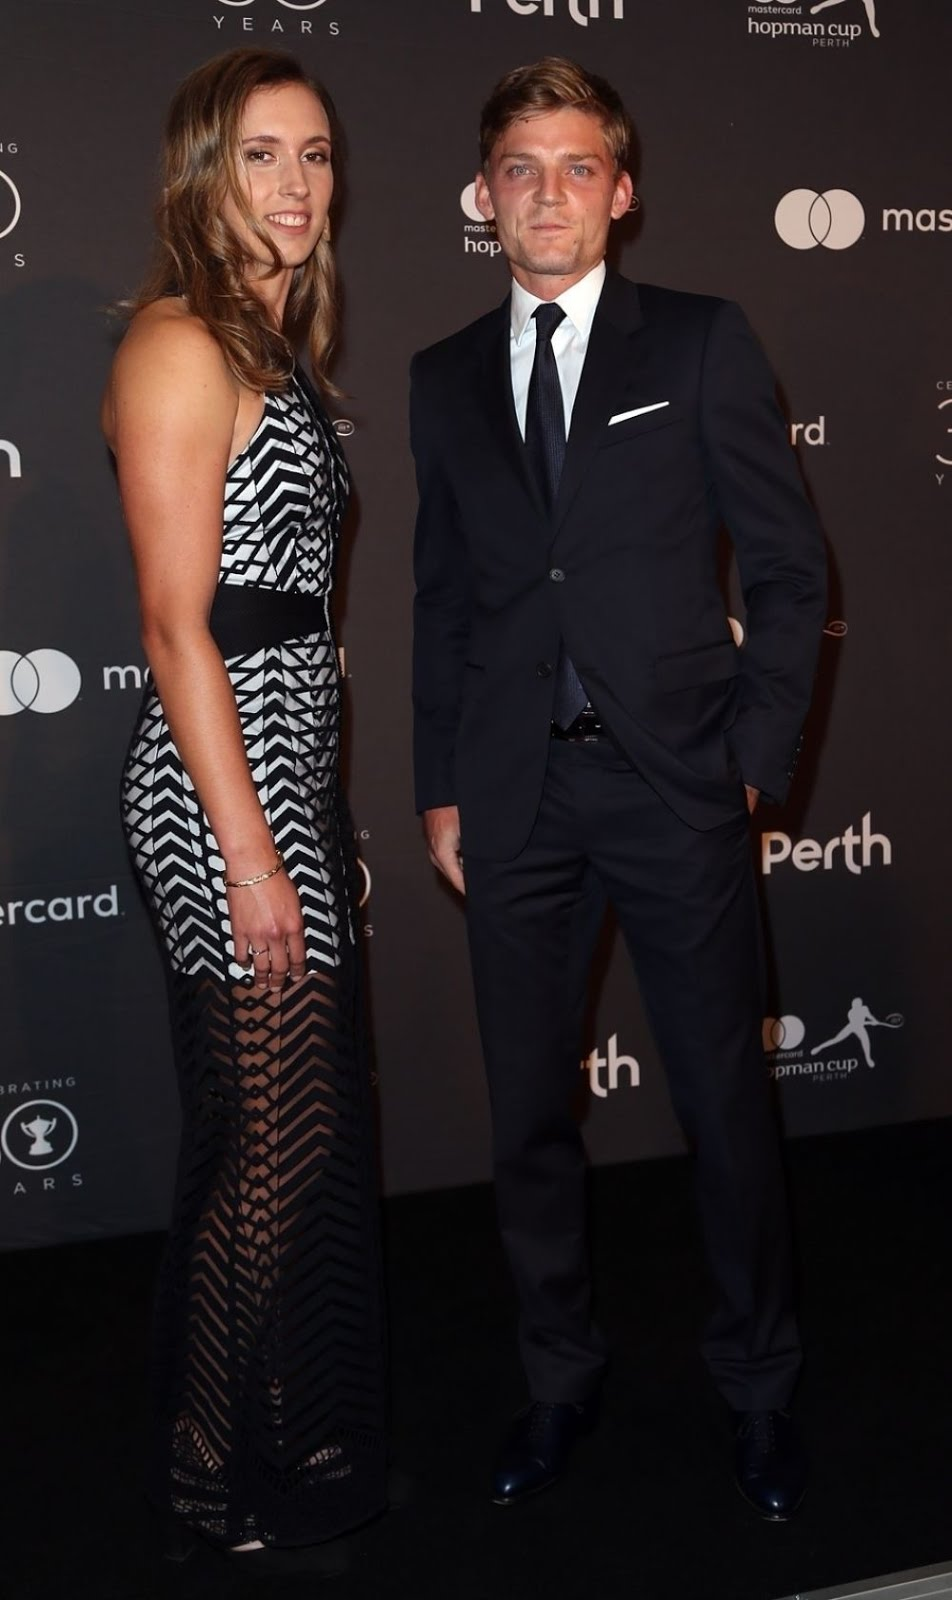 Photos of Elise Mertens And David Goffin At Hopman Cup New Years Eve Players Ball In Perth